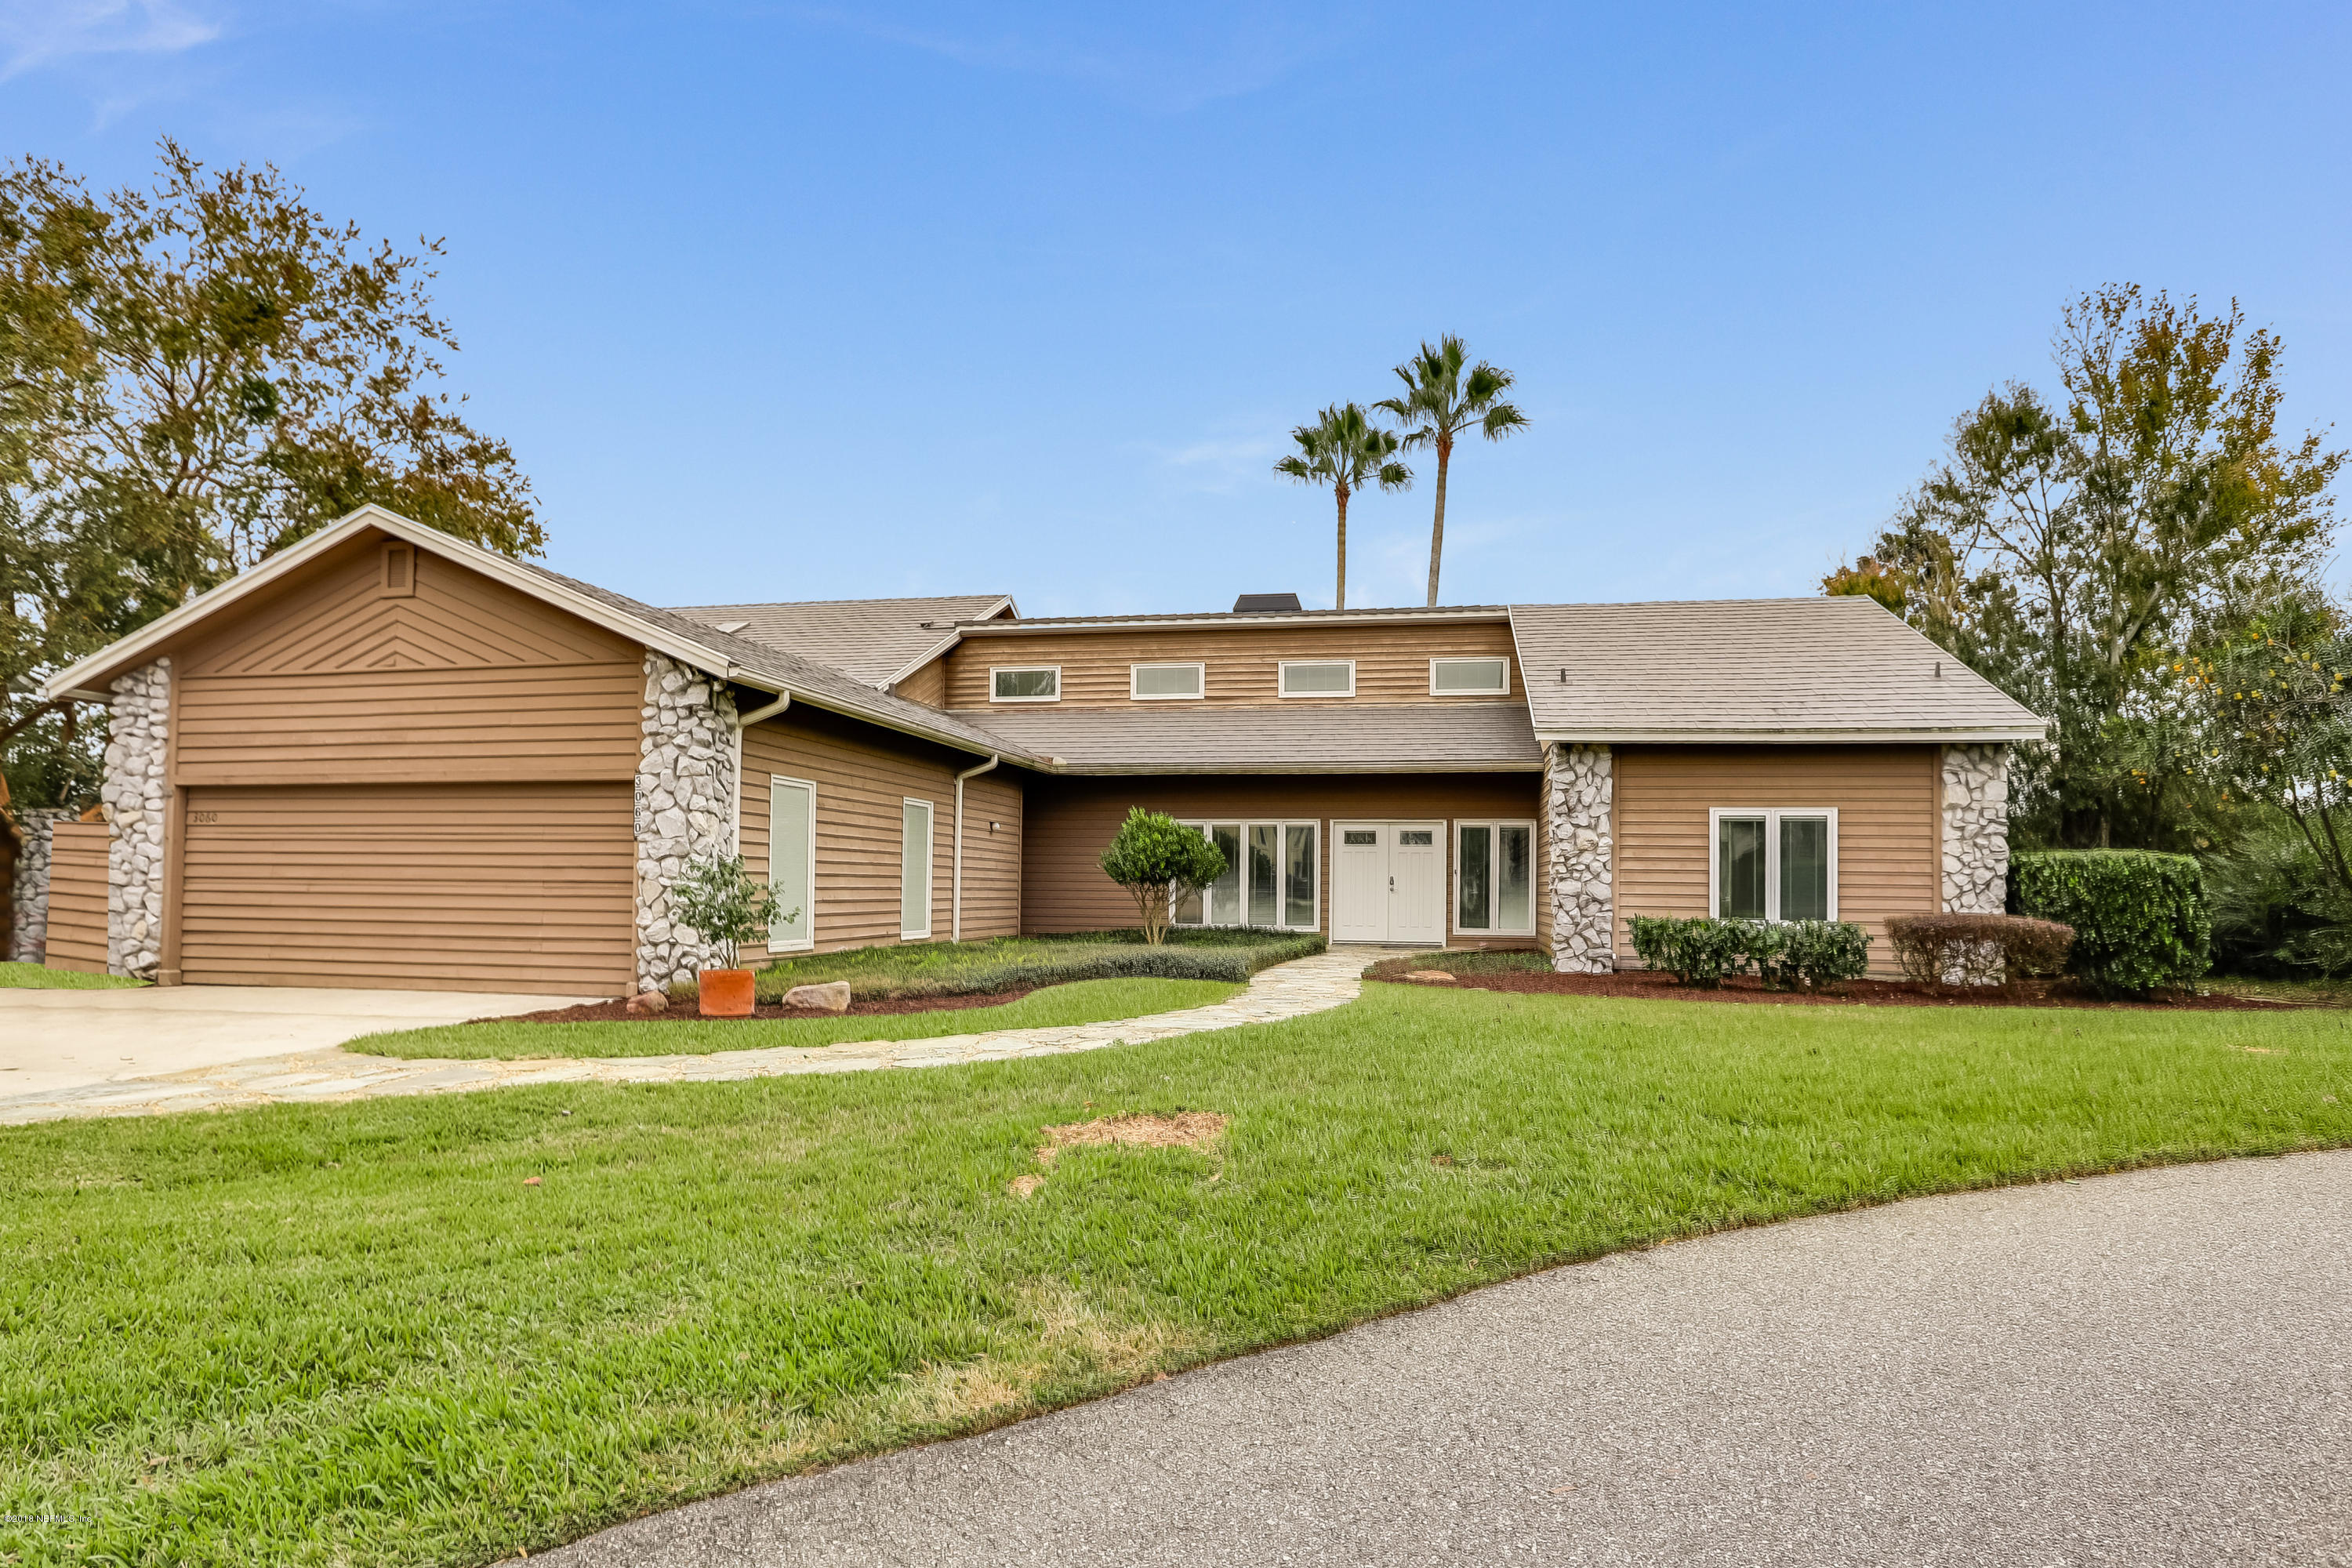 3060 TIMBERLAKE, PONTE VEDRA BEACH, FLORIDA 32082, 4 Bedrooms Bedrooms, ,3 BathroomsBathrooms,Residential - single family,For sale,TIMBERLAKE,971865